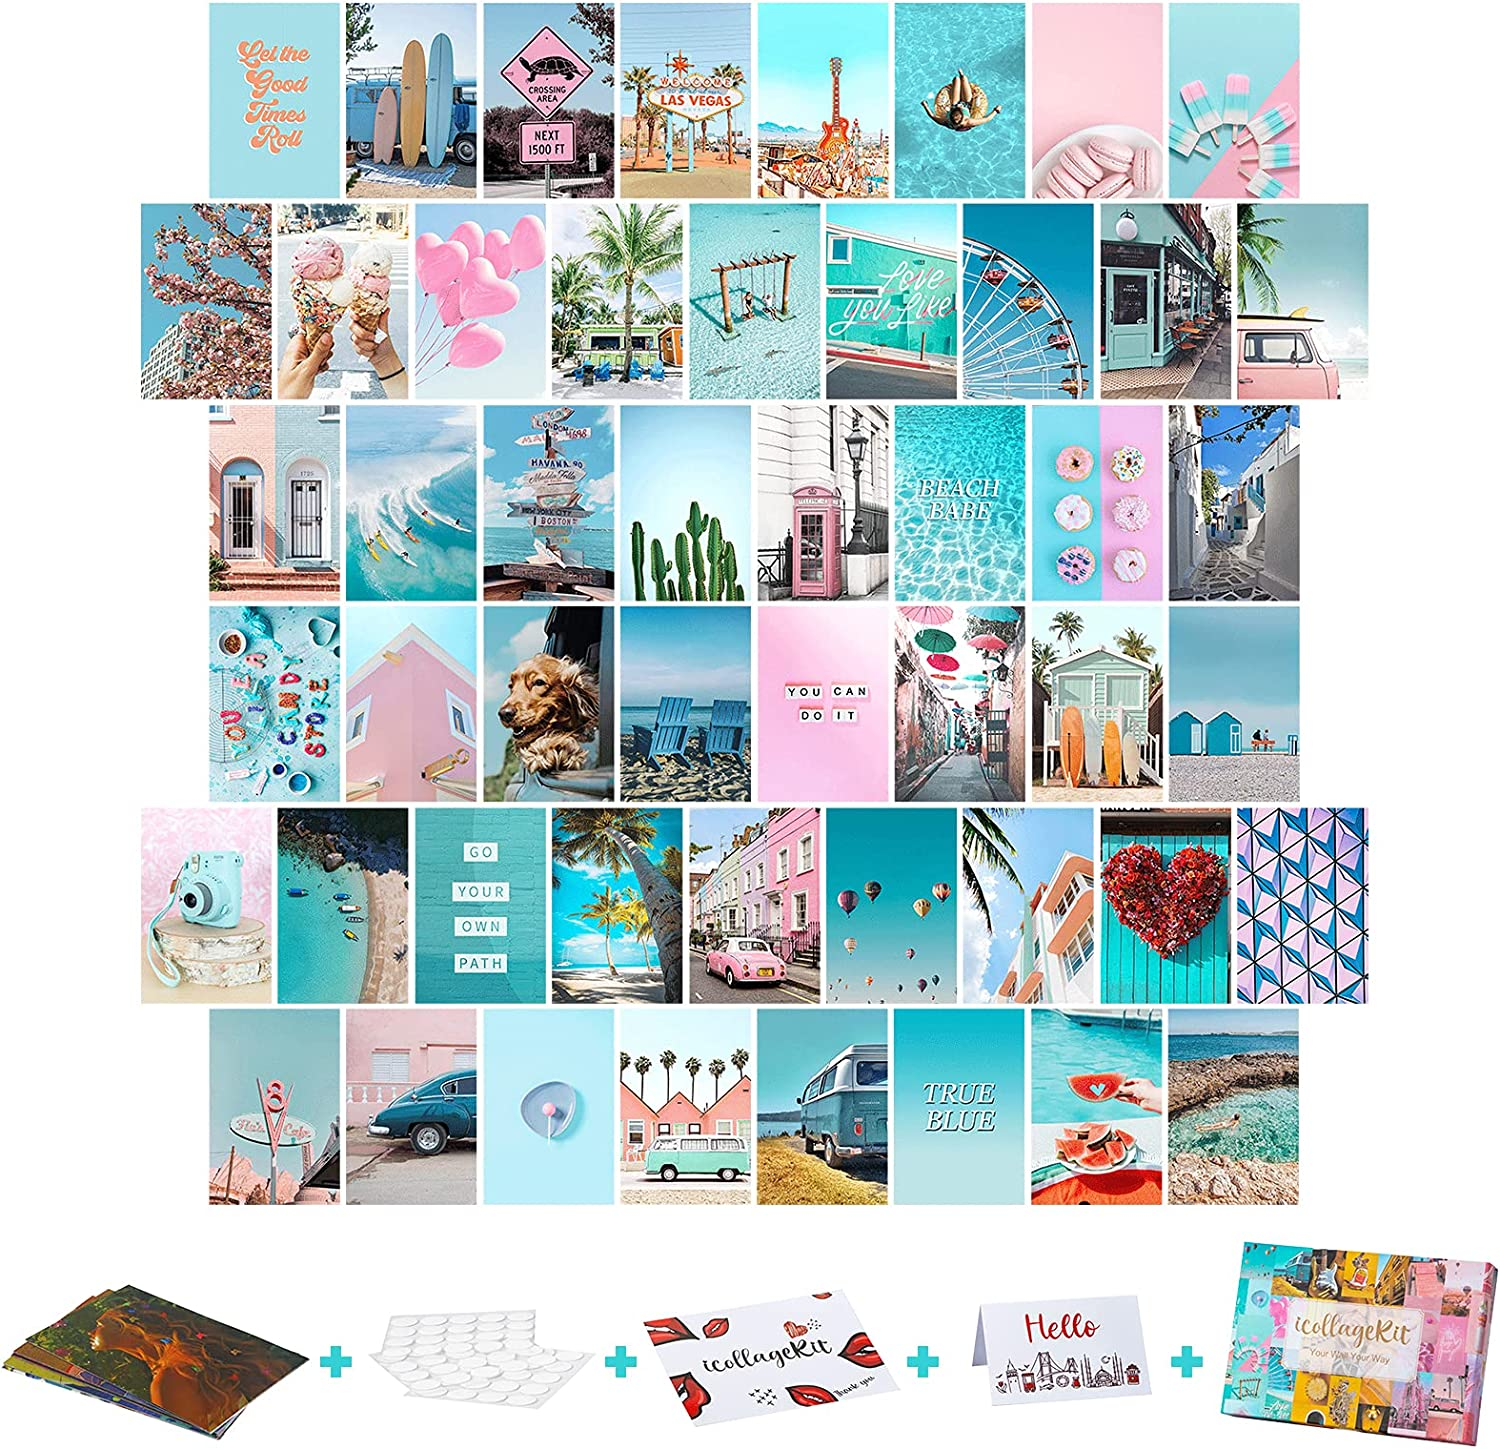 Wall Collage Kit Aesthetic Pictures, 50PCS 4x6 Inch, UnityStar Blue Aesthetic Wall Images Cute Room Decor for Teen Girls, Boho VSCO Photo Collage Kit for Wall Aesthetic